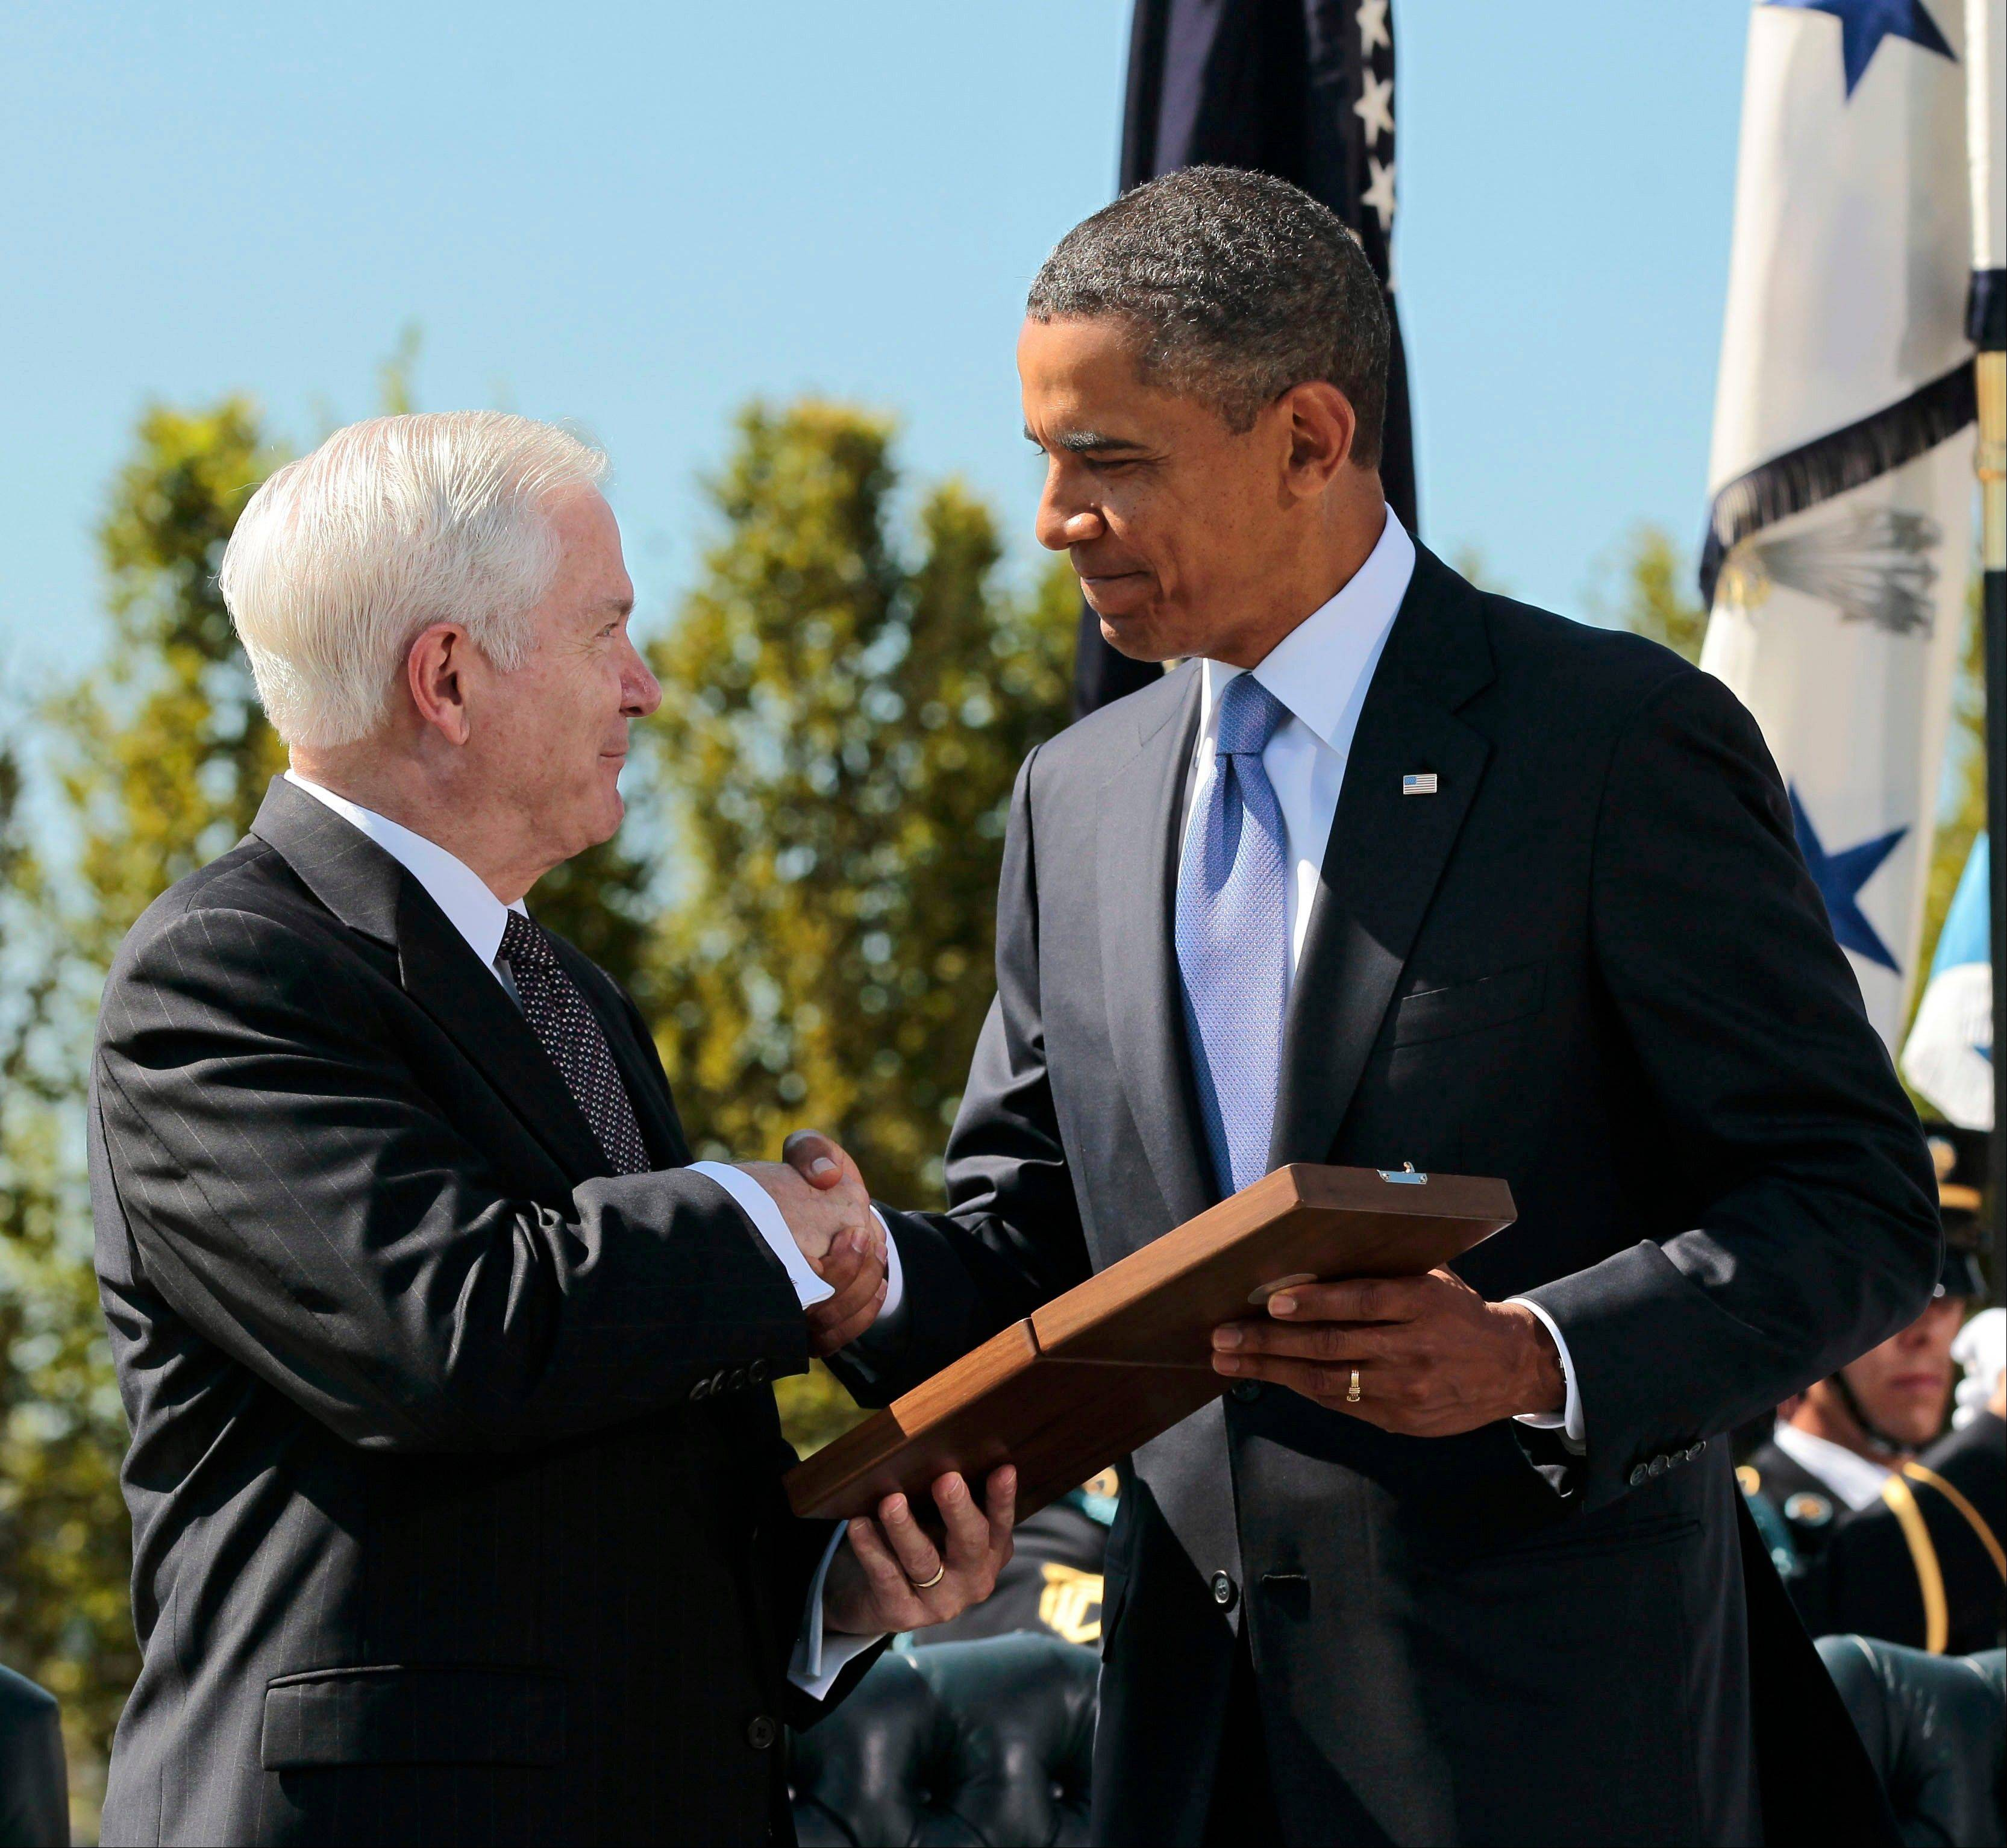 President Barack Obama presents the Presidential Medal of Freedom to retiring Defense Secretary Robert Gates during an Armed Forces Farewell Tribute, Thursday, June 30, 2011, at the Pentagon.